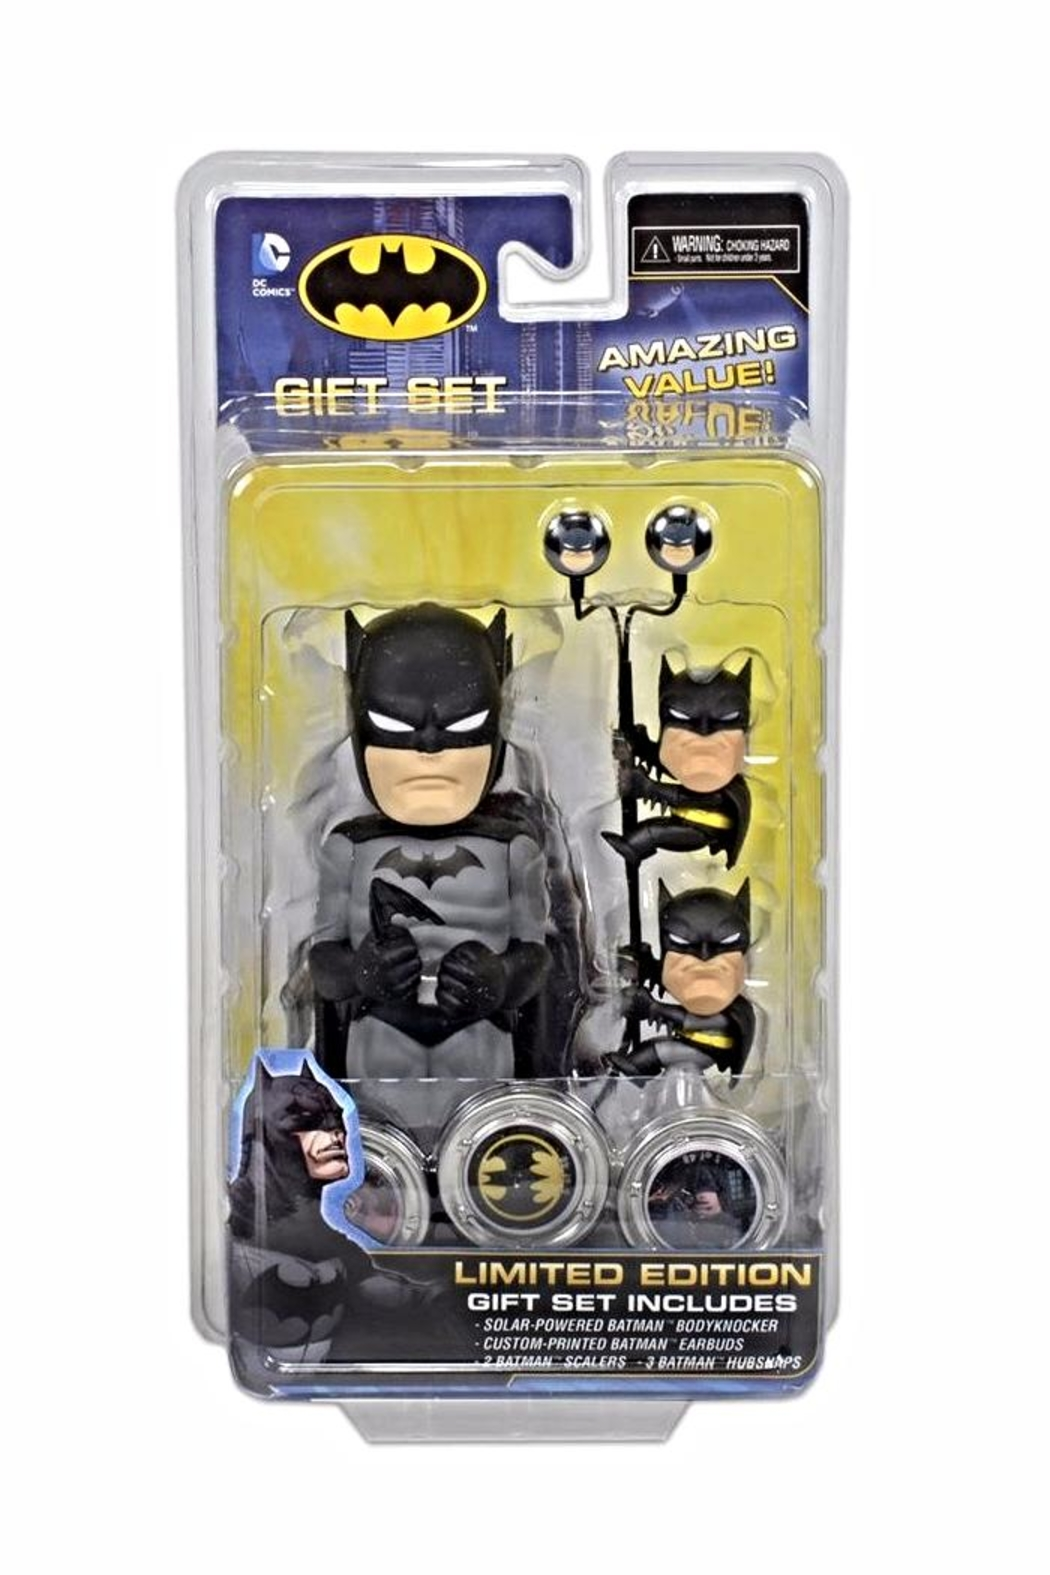 NECA Batman Gift Set - Main Image